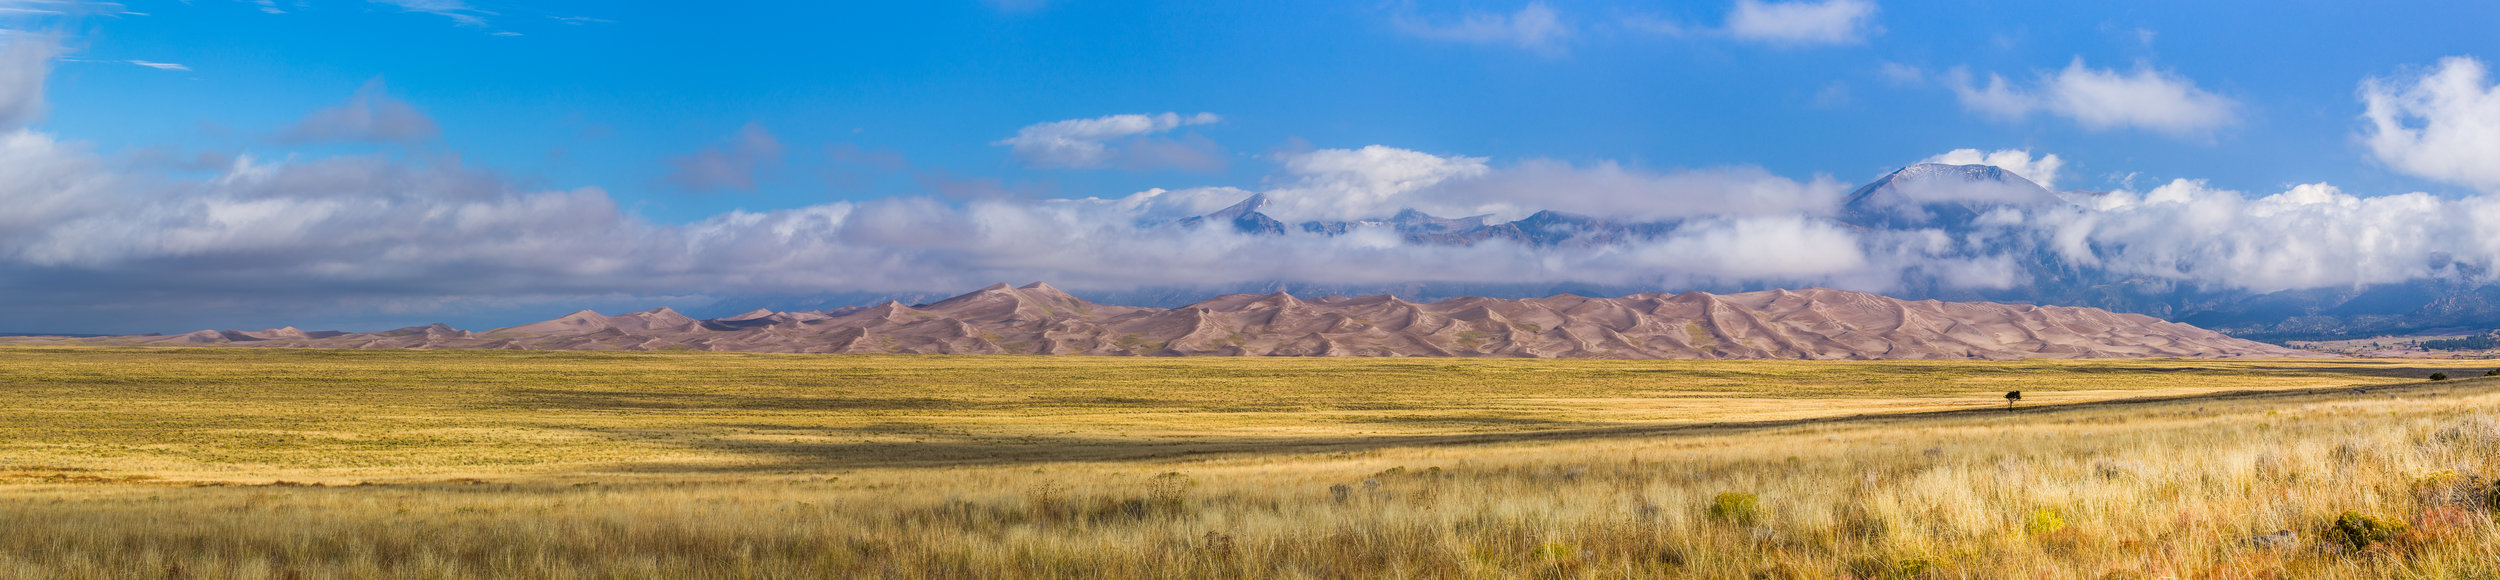 A Moving Park, Great Sand Dunes National Park  © Andrew Lockwood 2017